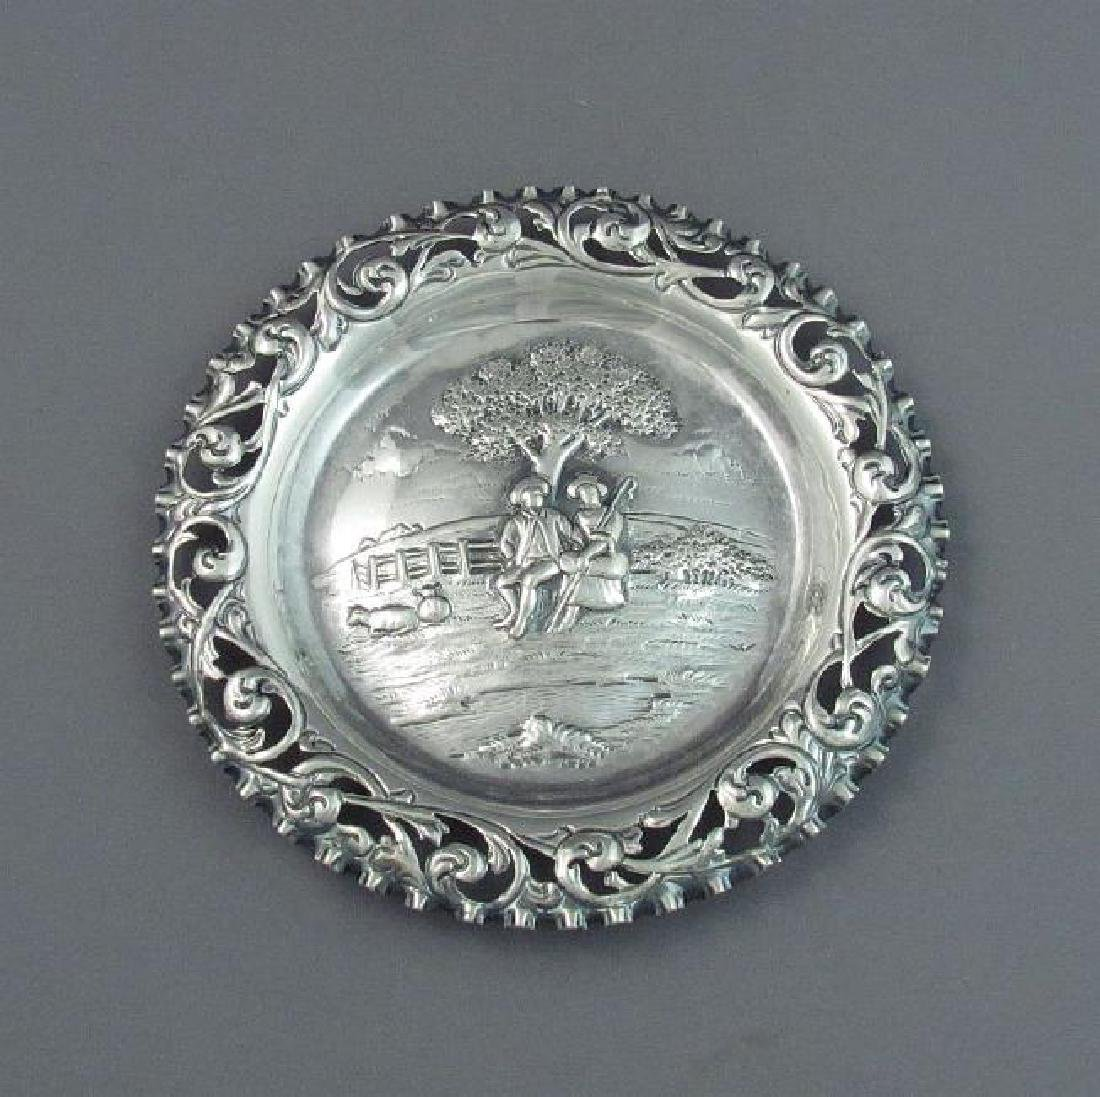 Antique English George III Sterling Silver Dish, 1801